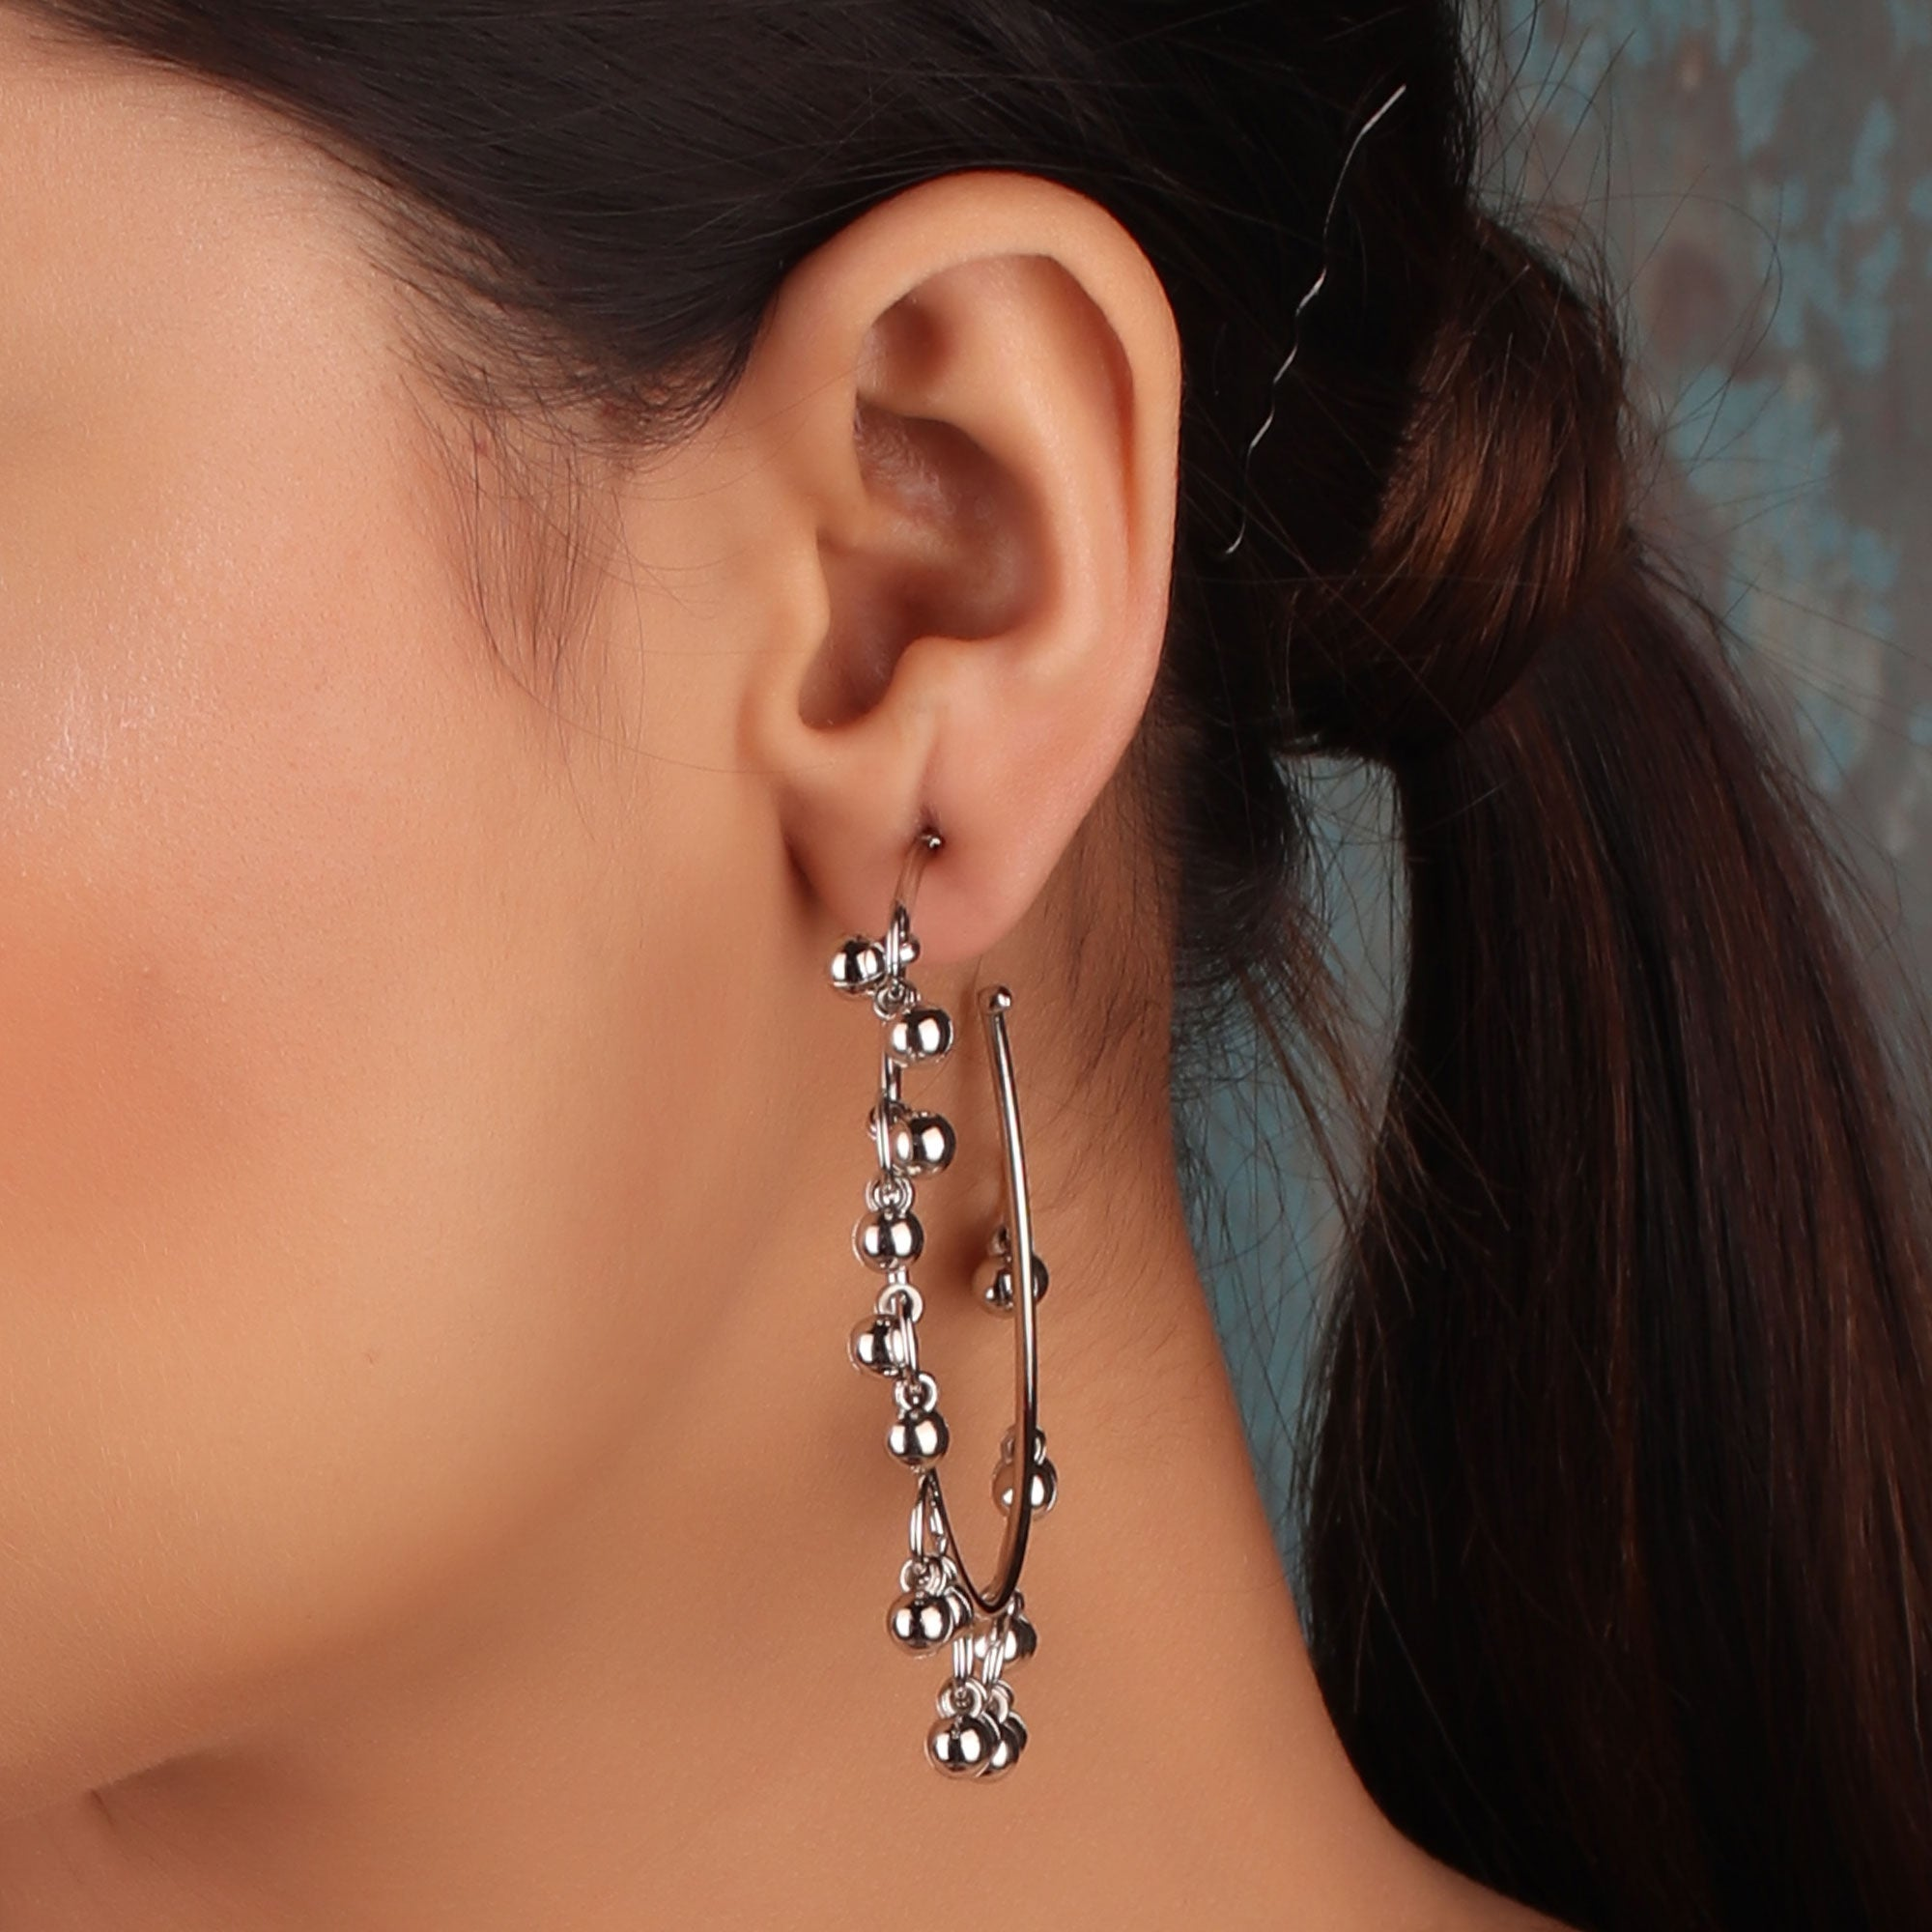 Earrings,The Ecstasy Bud wheel Earrings in Oxidized Silver - Cippele Multi Store